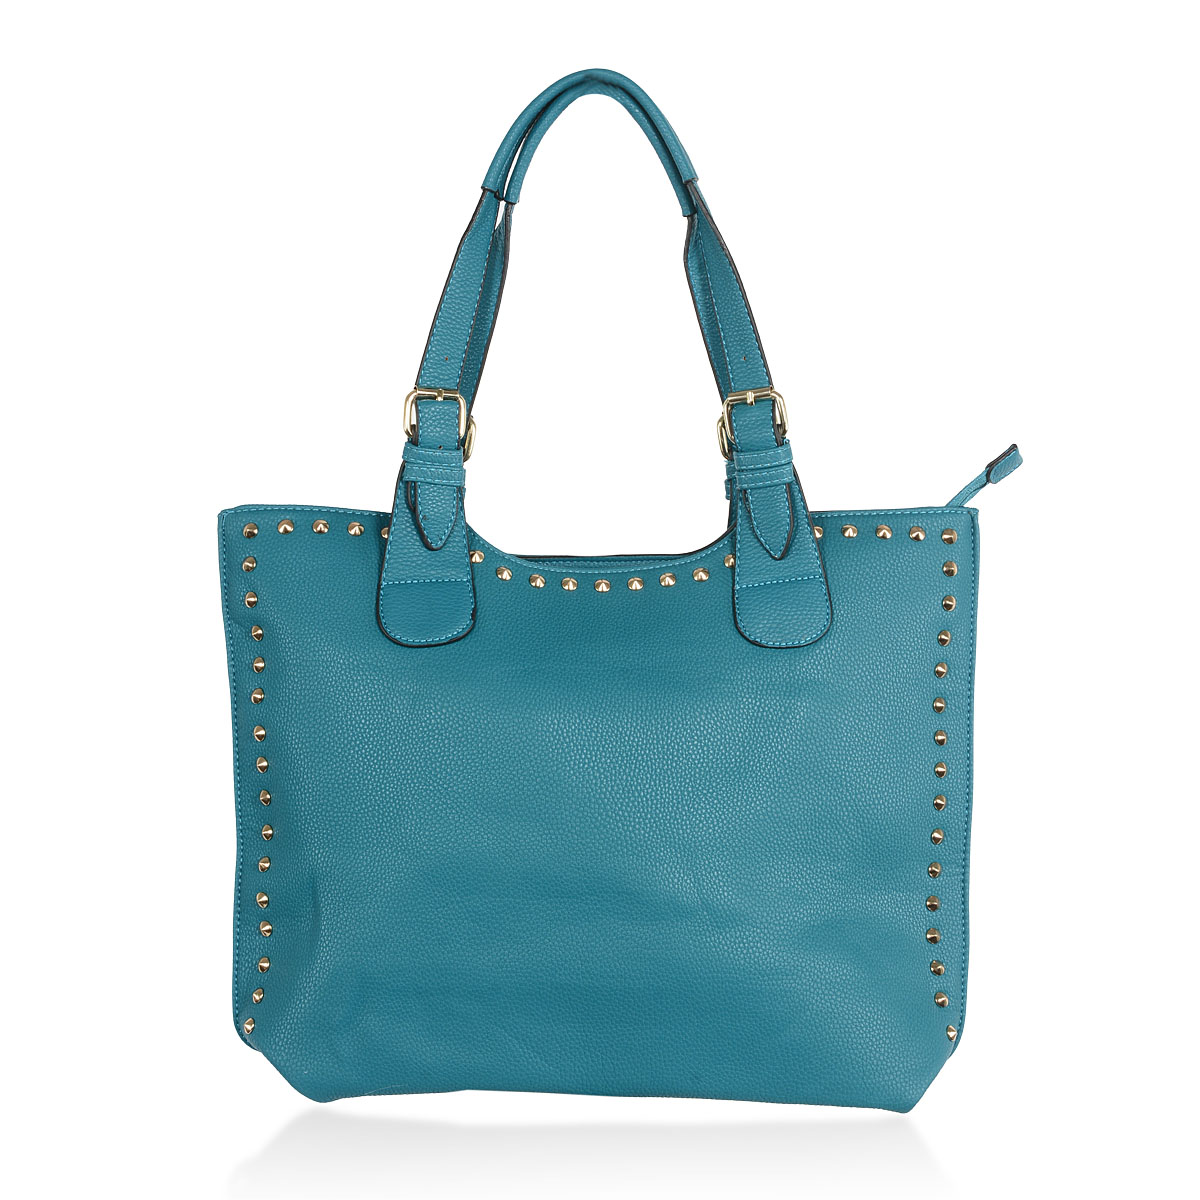 teal vegan leather studded tote bag 13x13x4 in tote